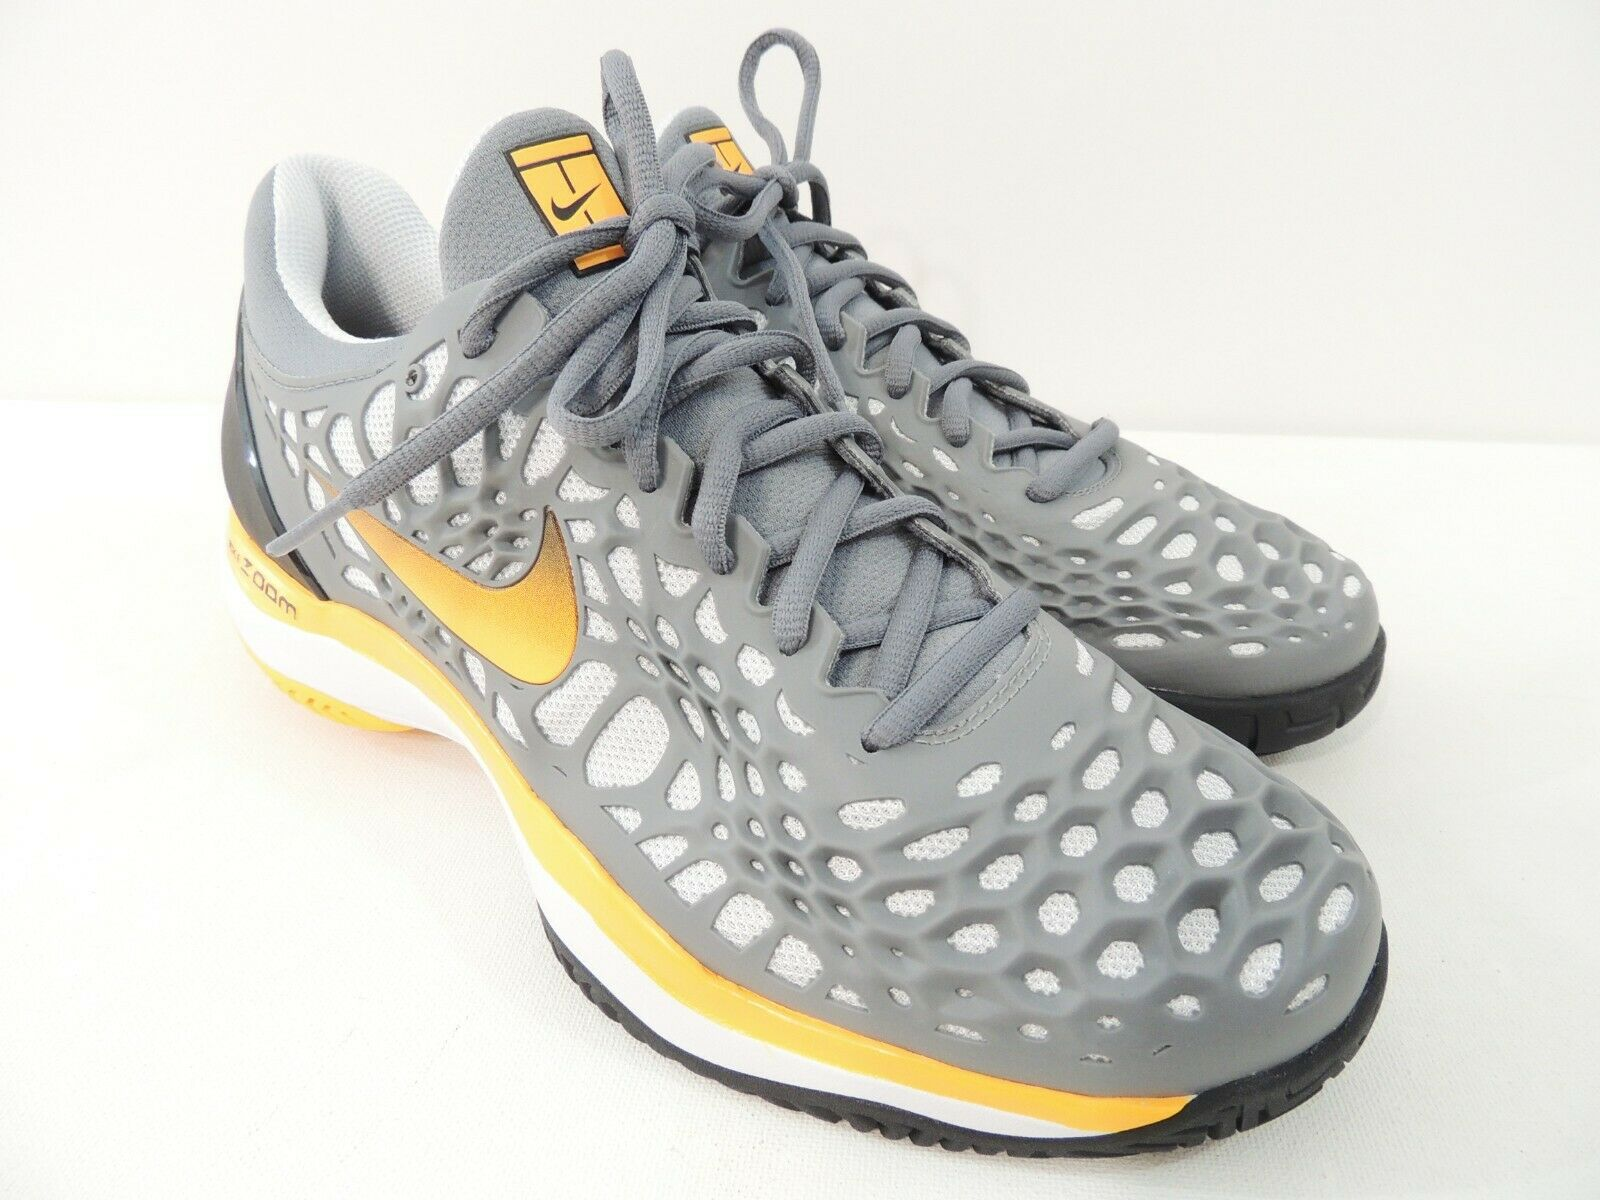 Nike Mens Air Zoom Cage Cage Cage 3 HC White Black Yellow Grey Tennis 918193-003 Size 10 53db3d